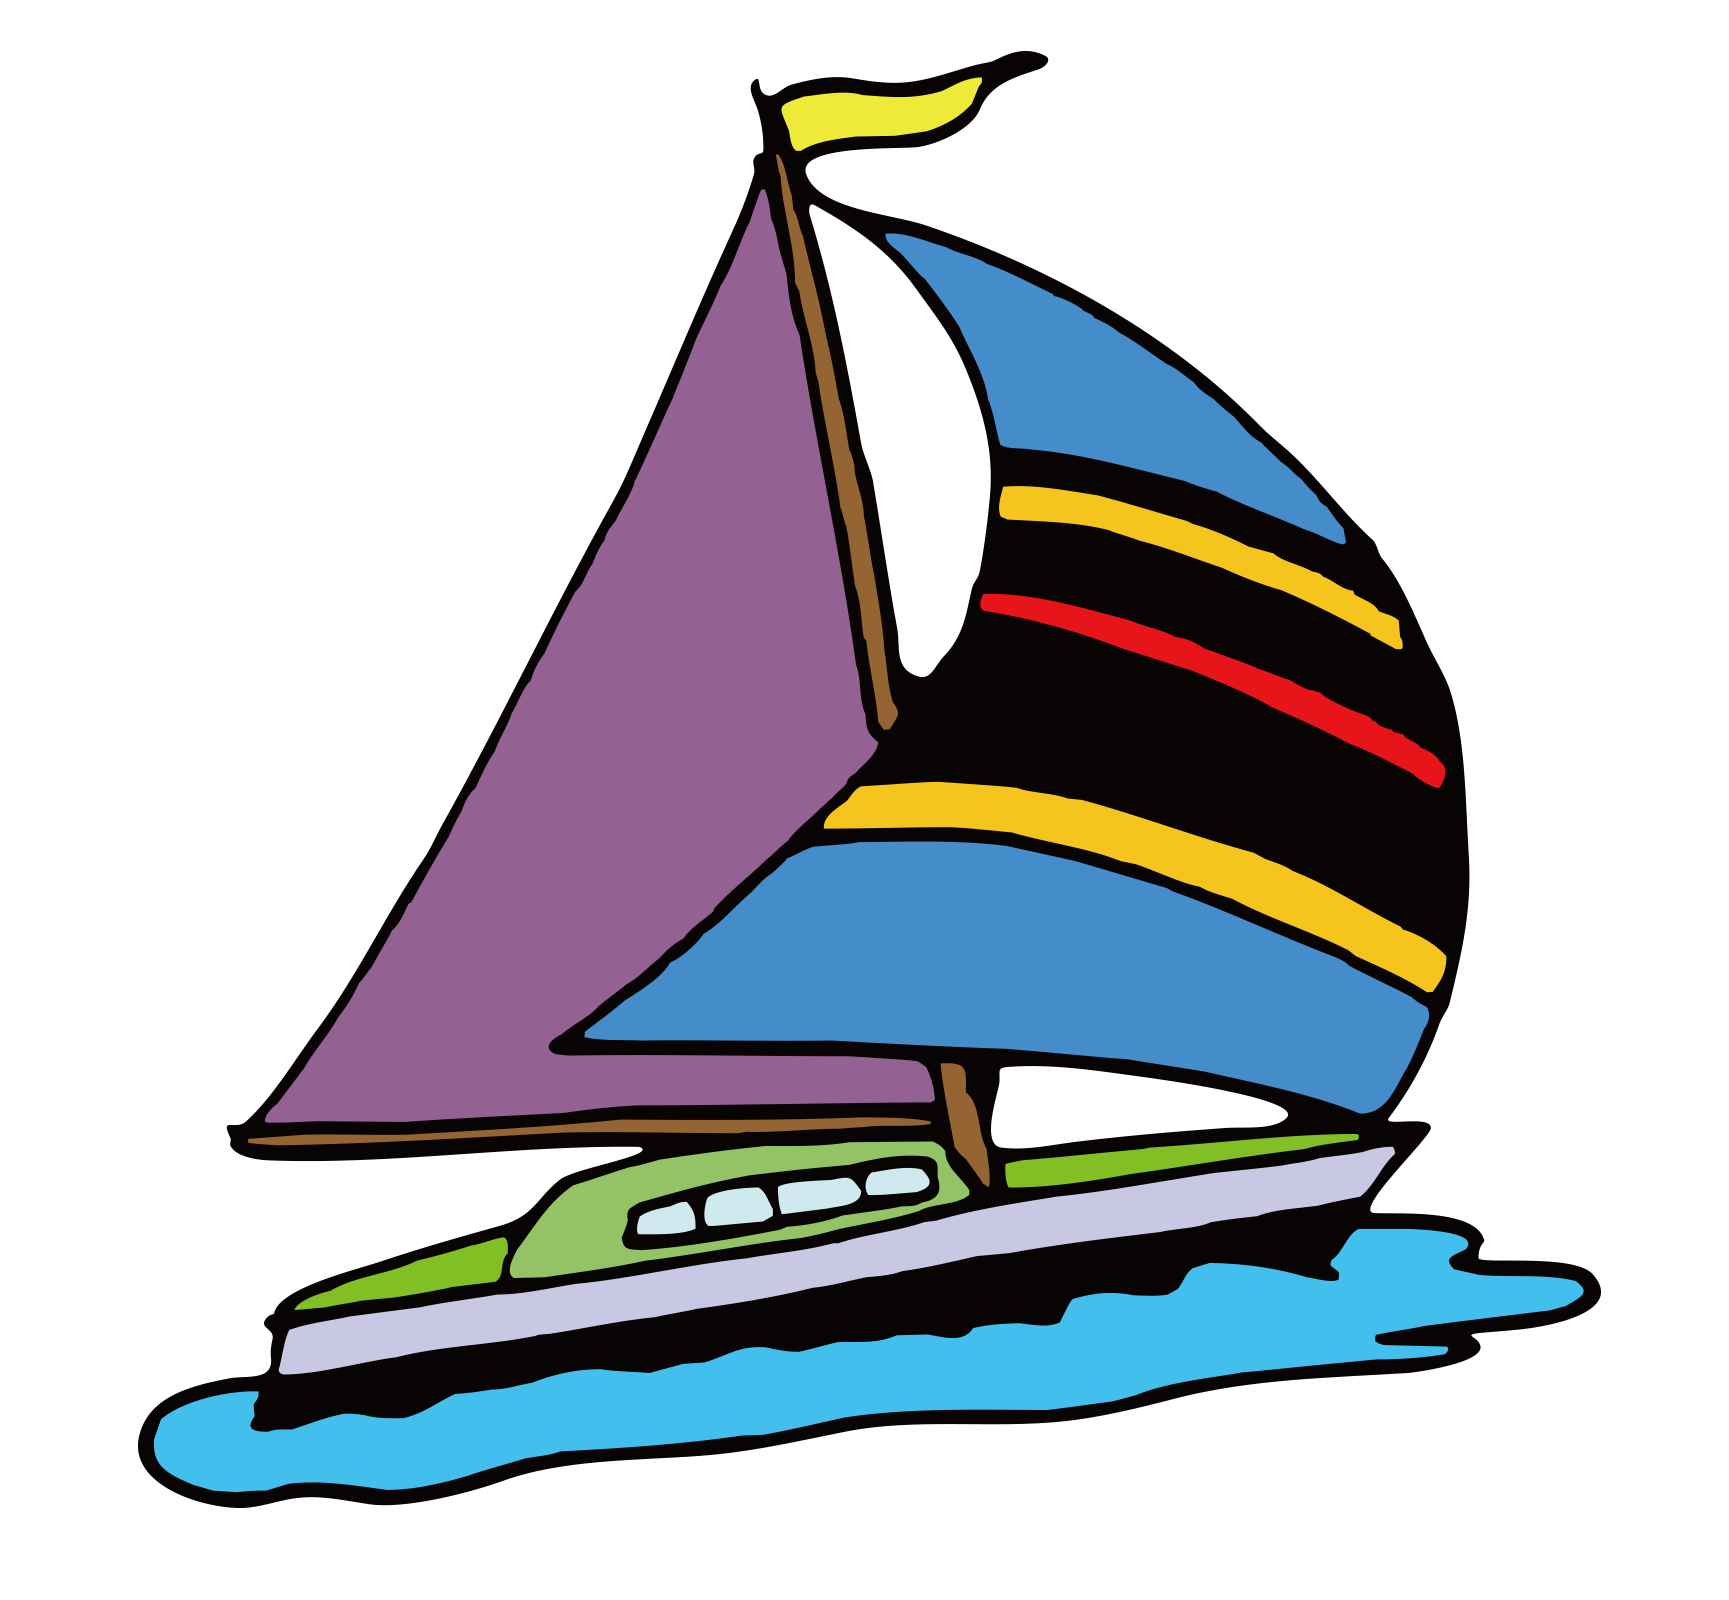 Cartoon sailboat png. Sailing ship clip art